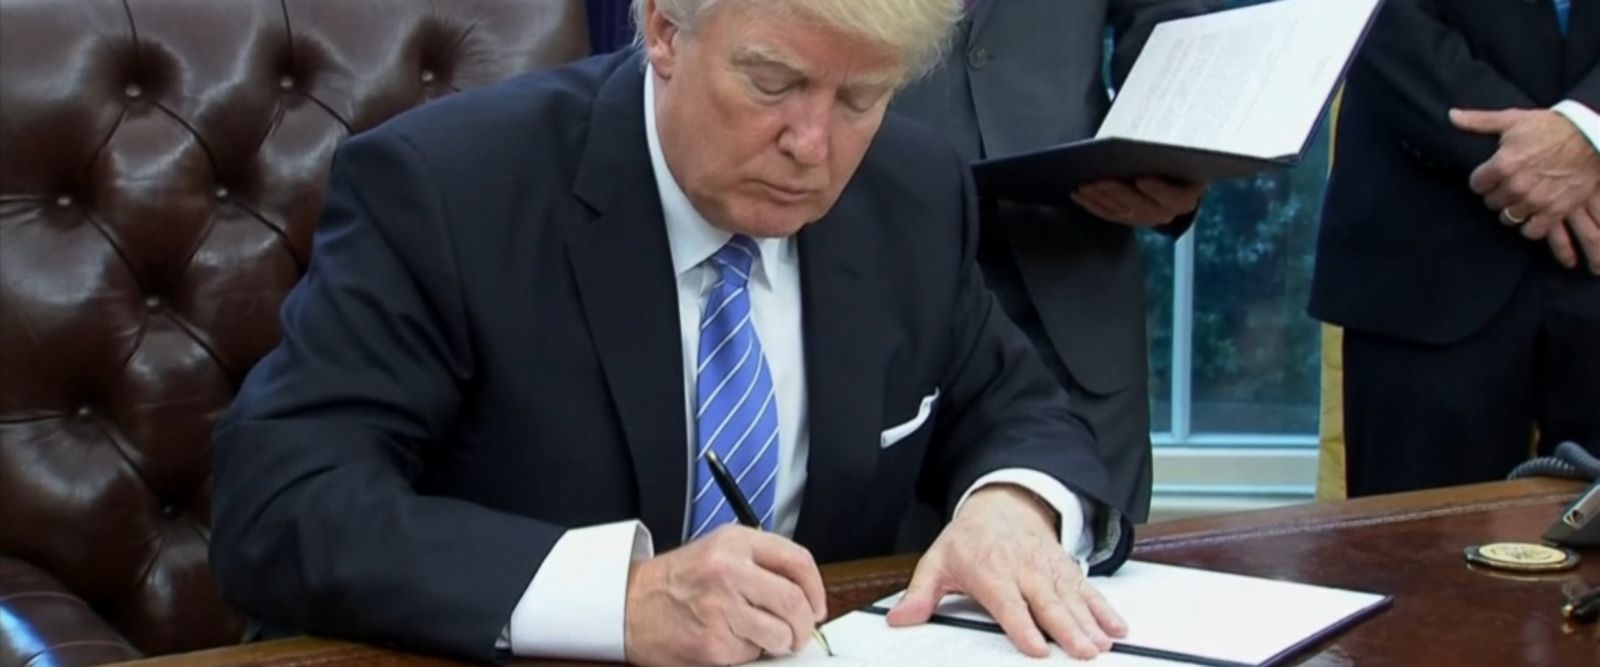 President Donald Trump signed an executive order this morning which called for the U.S.'s withdrawal from the Trans-Pacific Partnership, fulfilling a promise made on the campaign trail in a move he says will help American businesses.